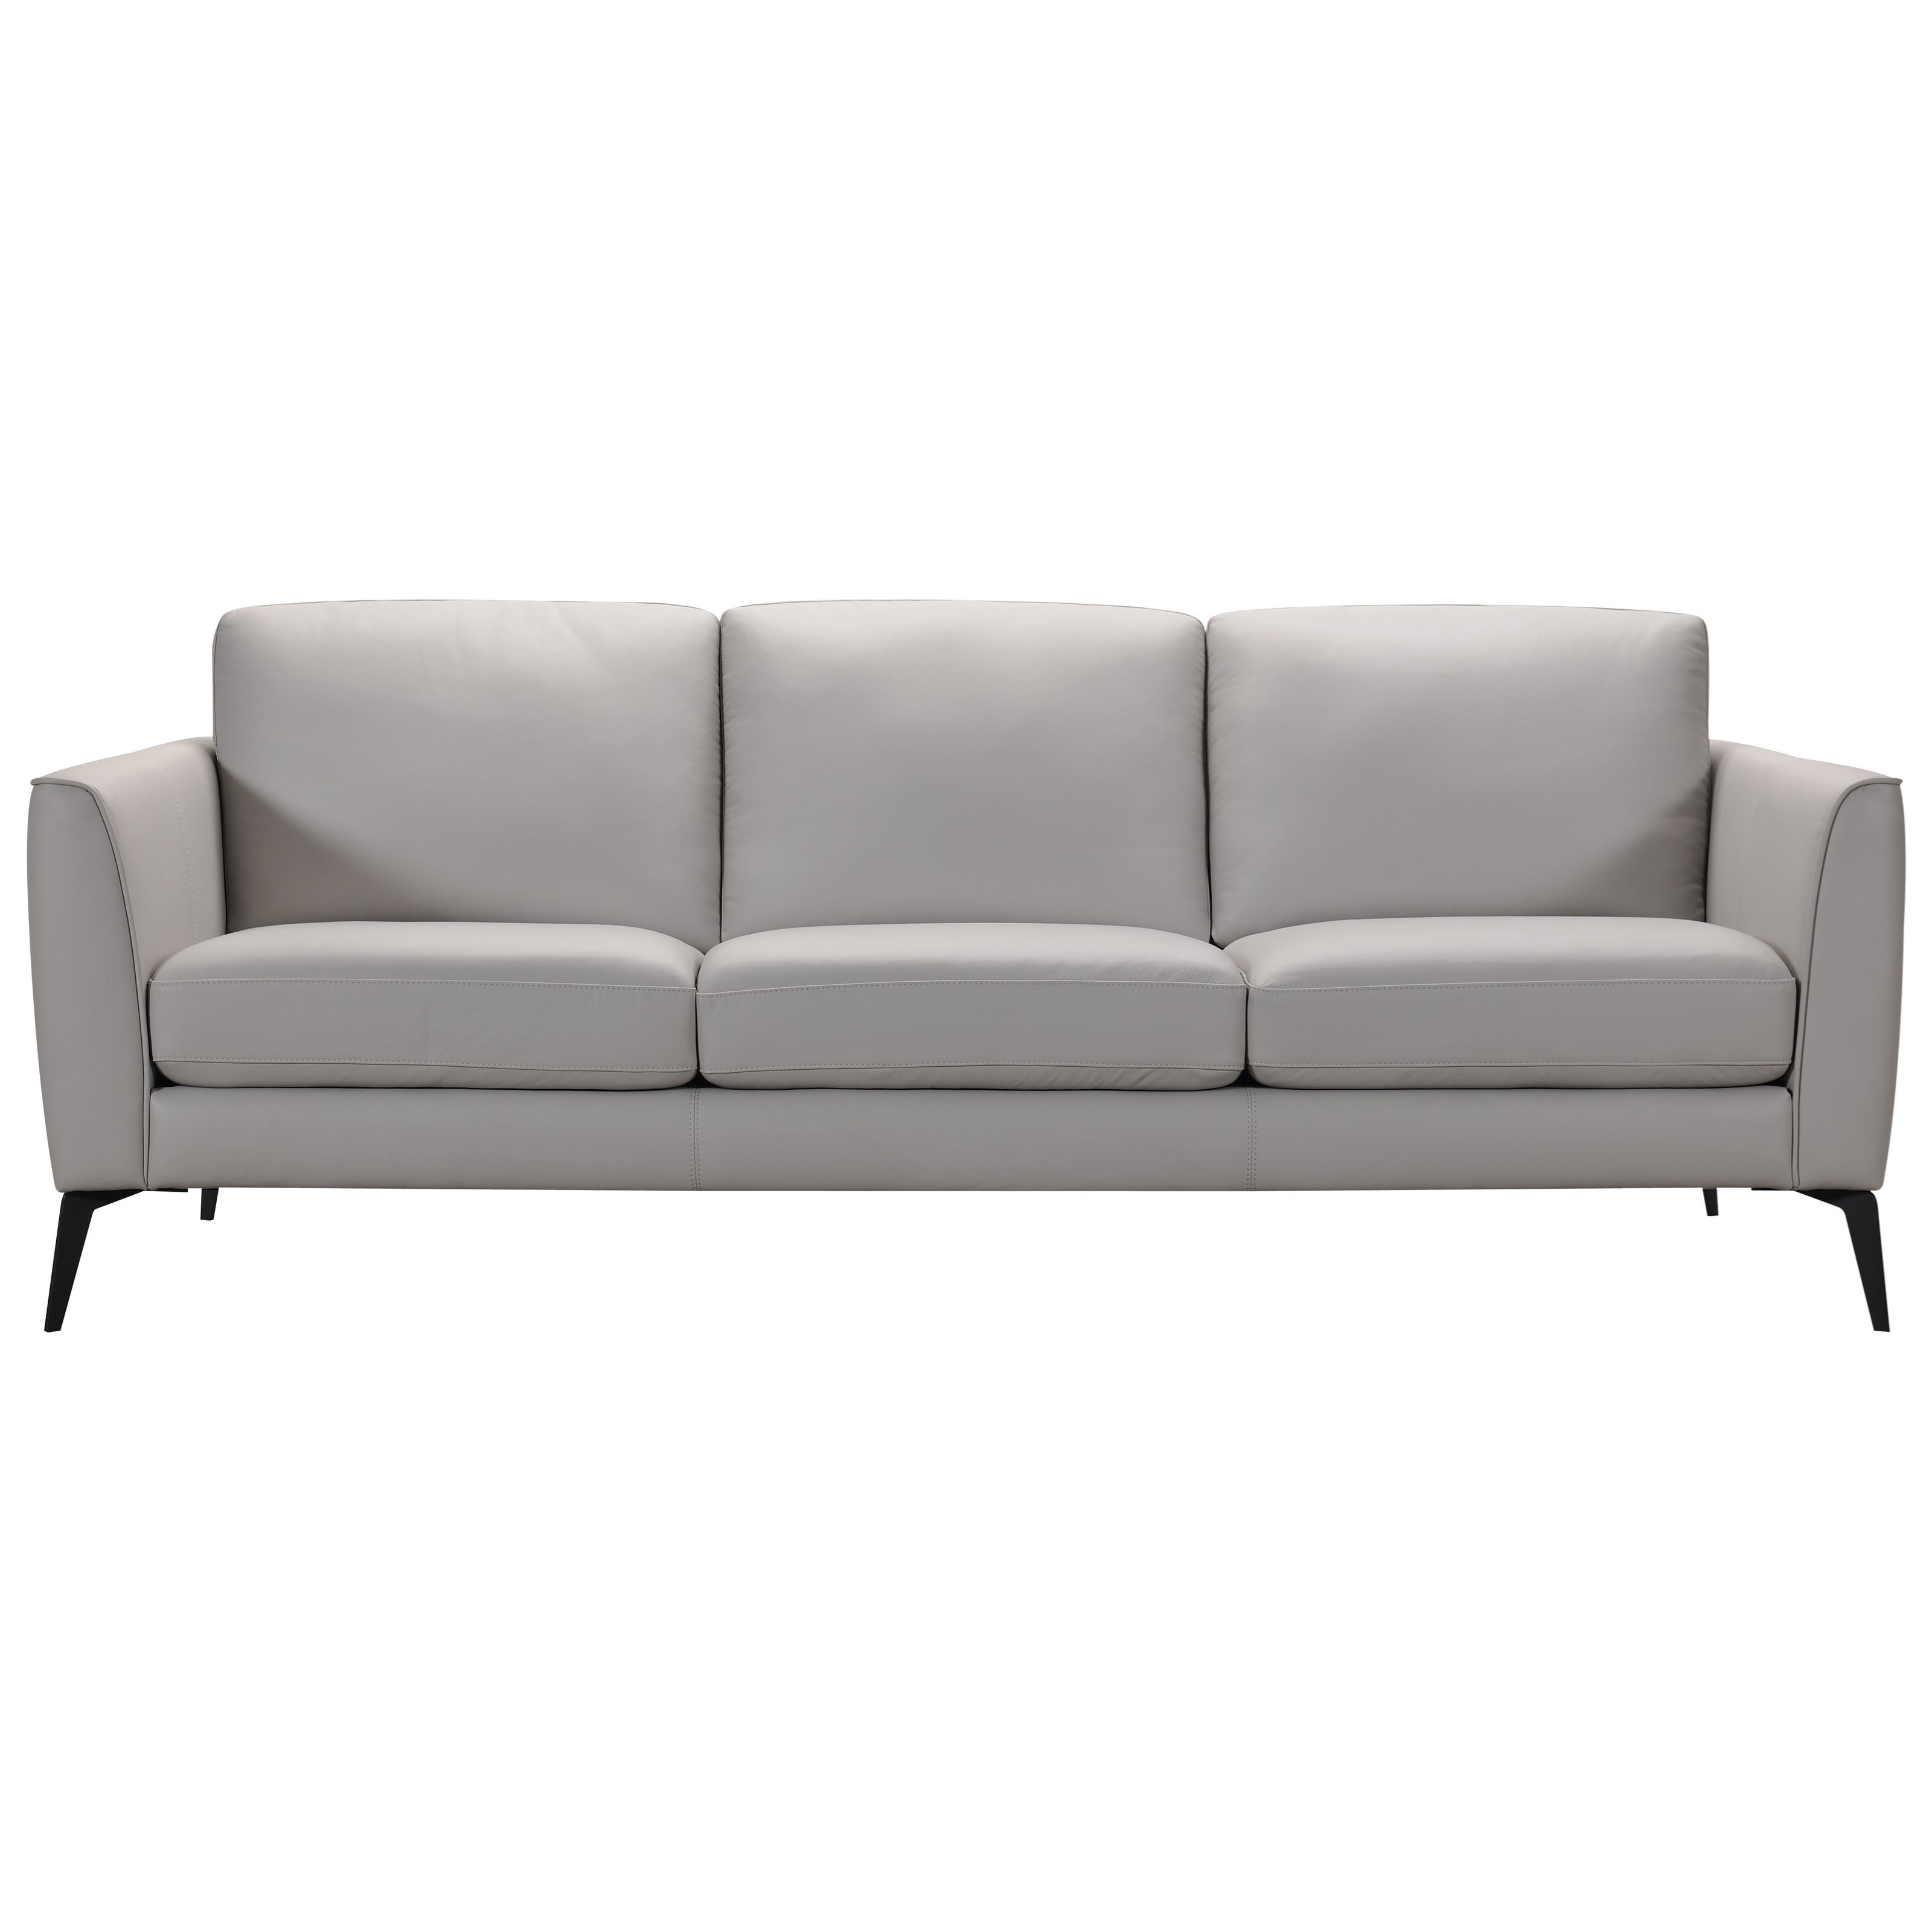 31800 Sofa by Violino at Furniture Superstore - Rochester, MN